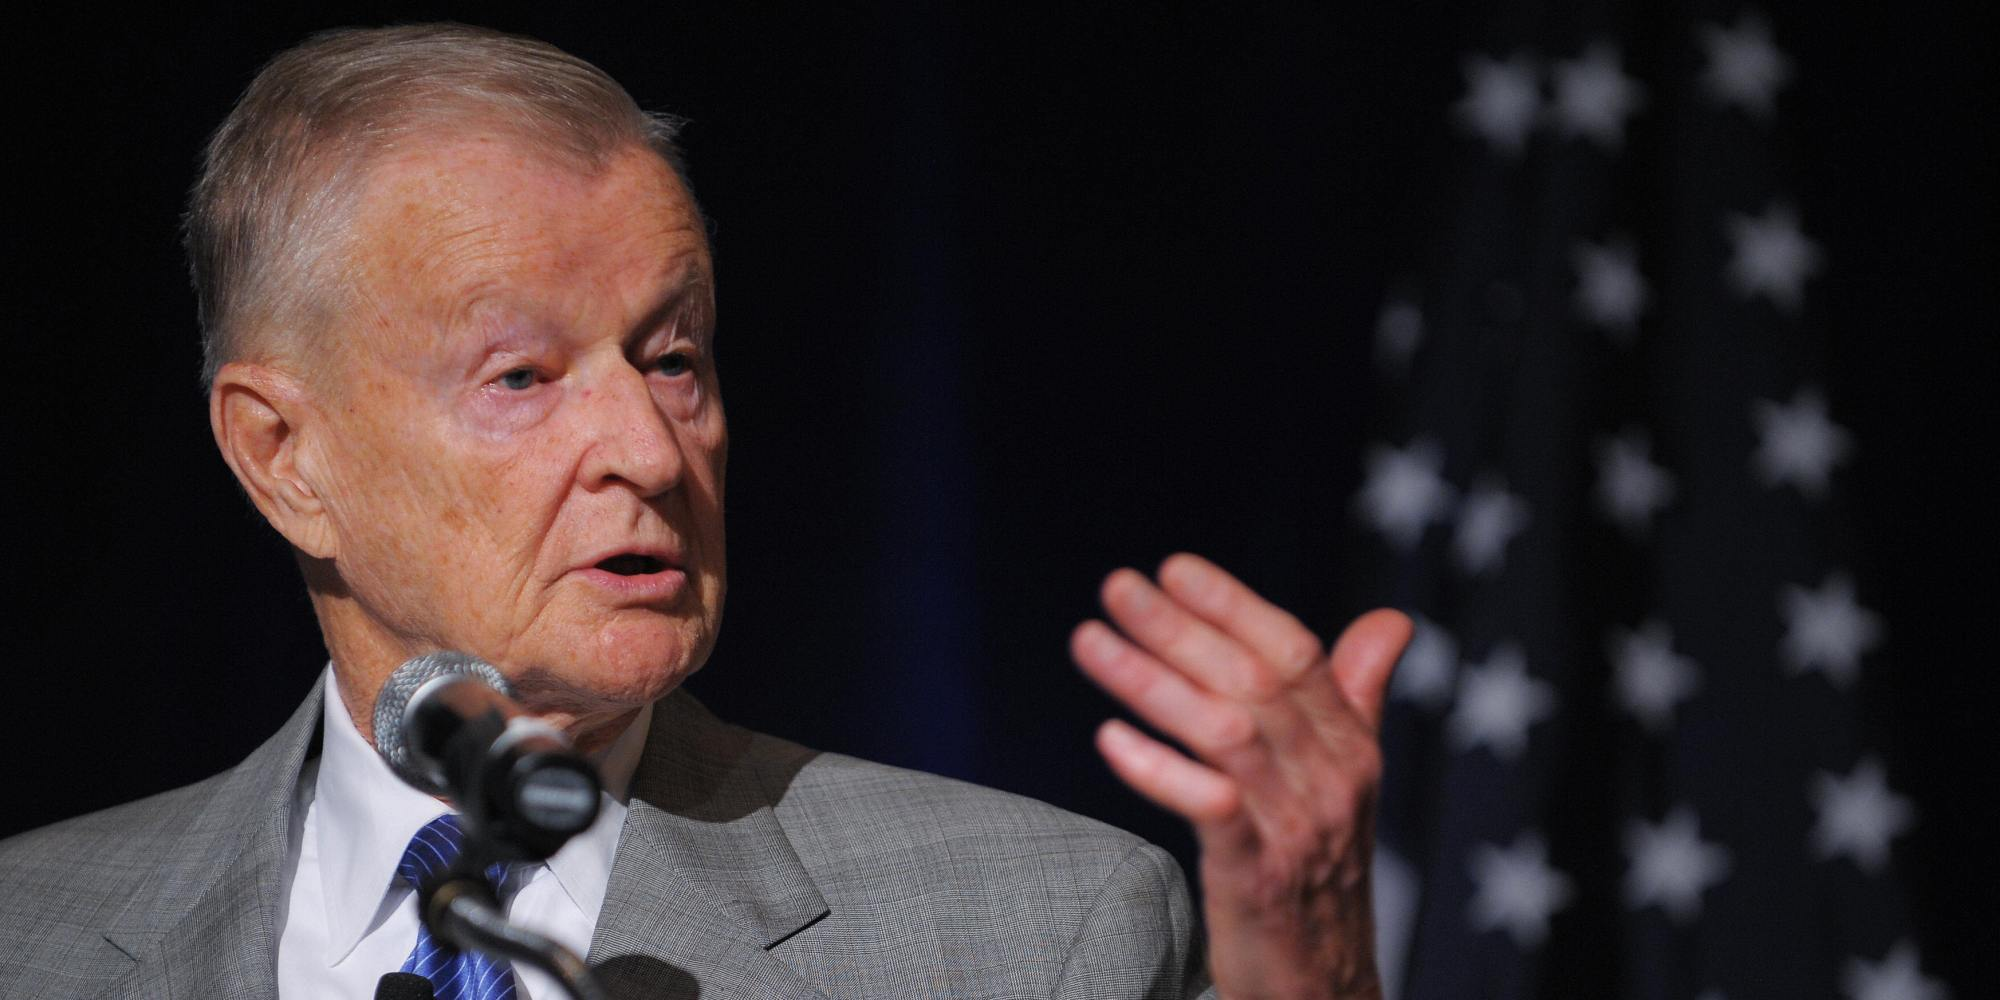 Former US national security advisor Zbigniew Brzezinski